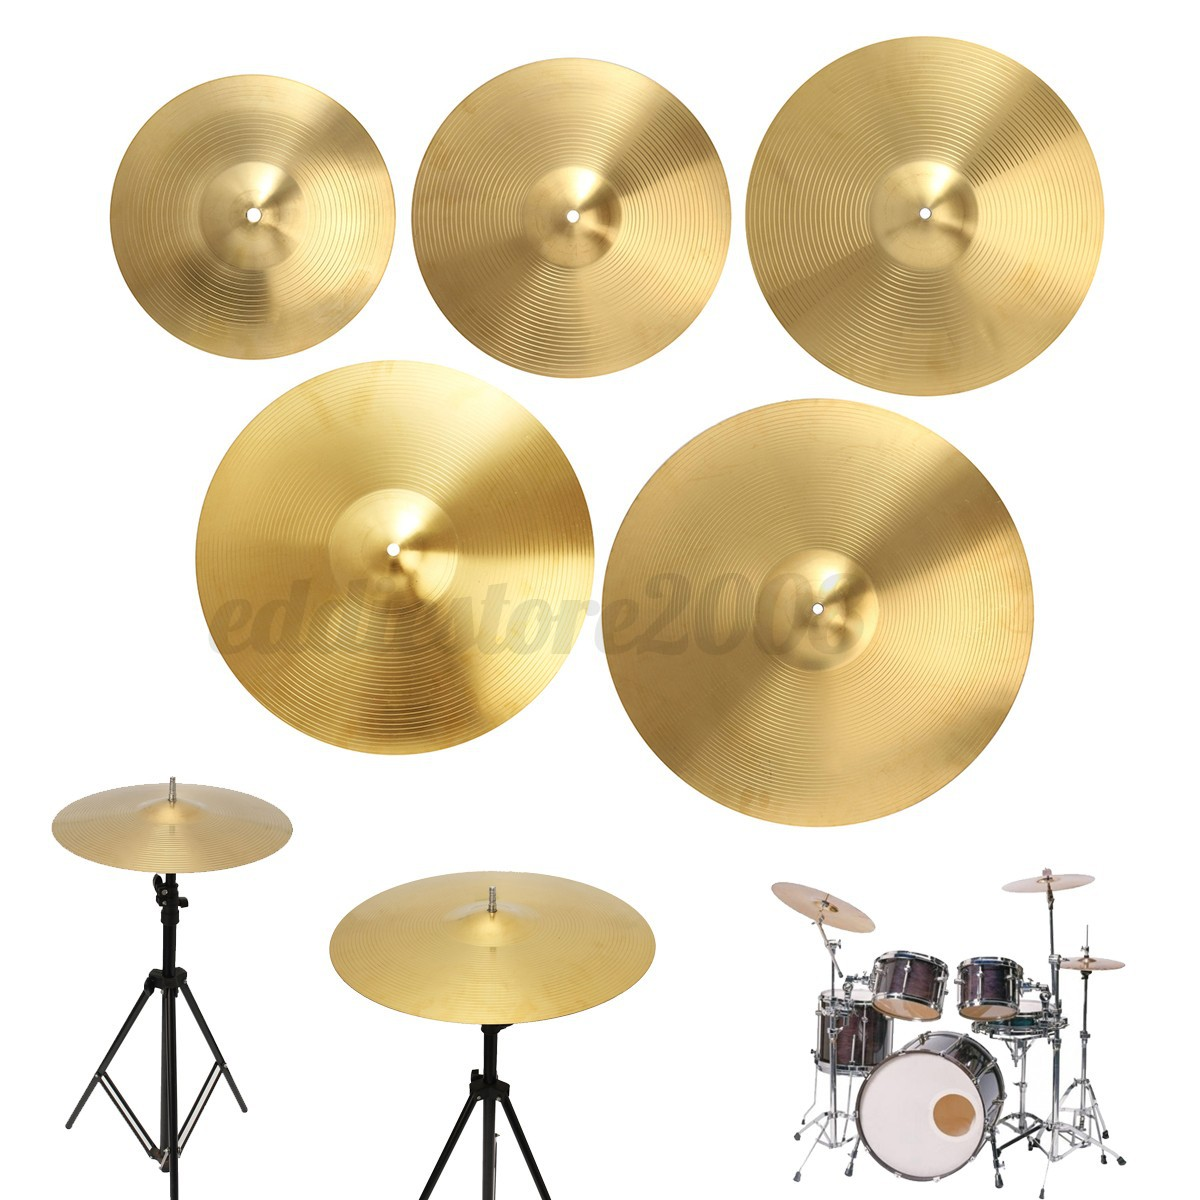 Cymbals For Crash And Ride : 12 39 39 14 39 39 16 39 39 18 39 39 20 39 39 splash hi hat crash ride cymbal drummer brass music ebay ~ Russianpoet.info Haus und Dekorationen